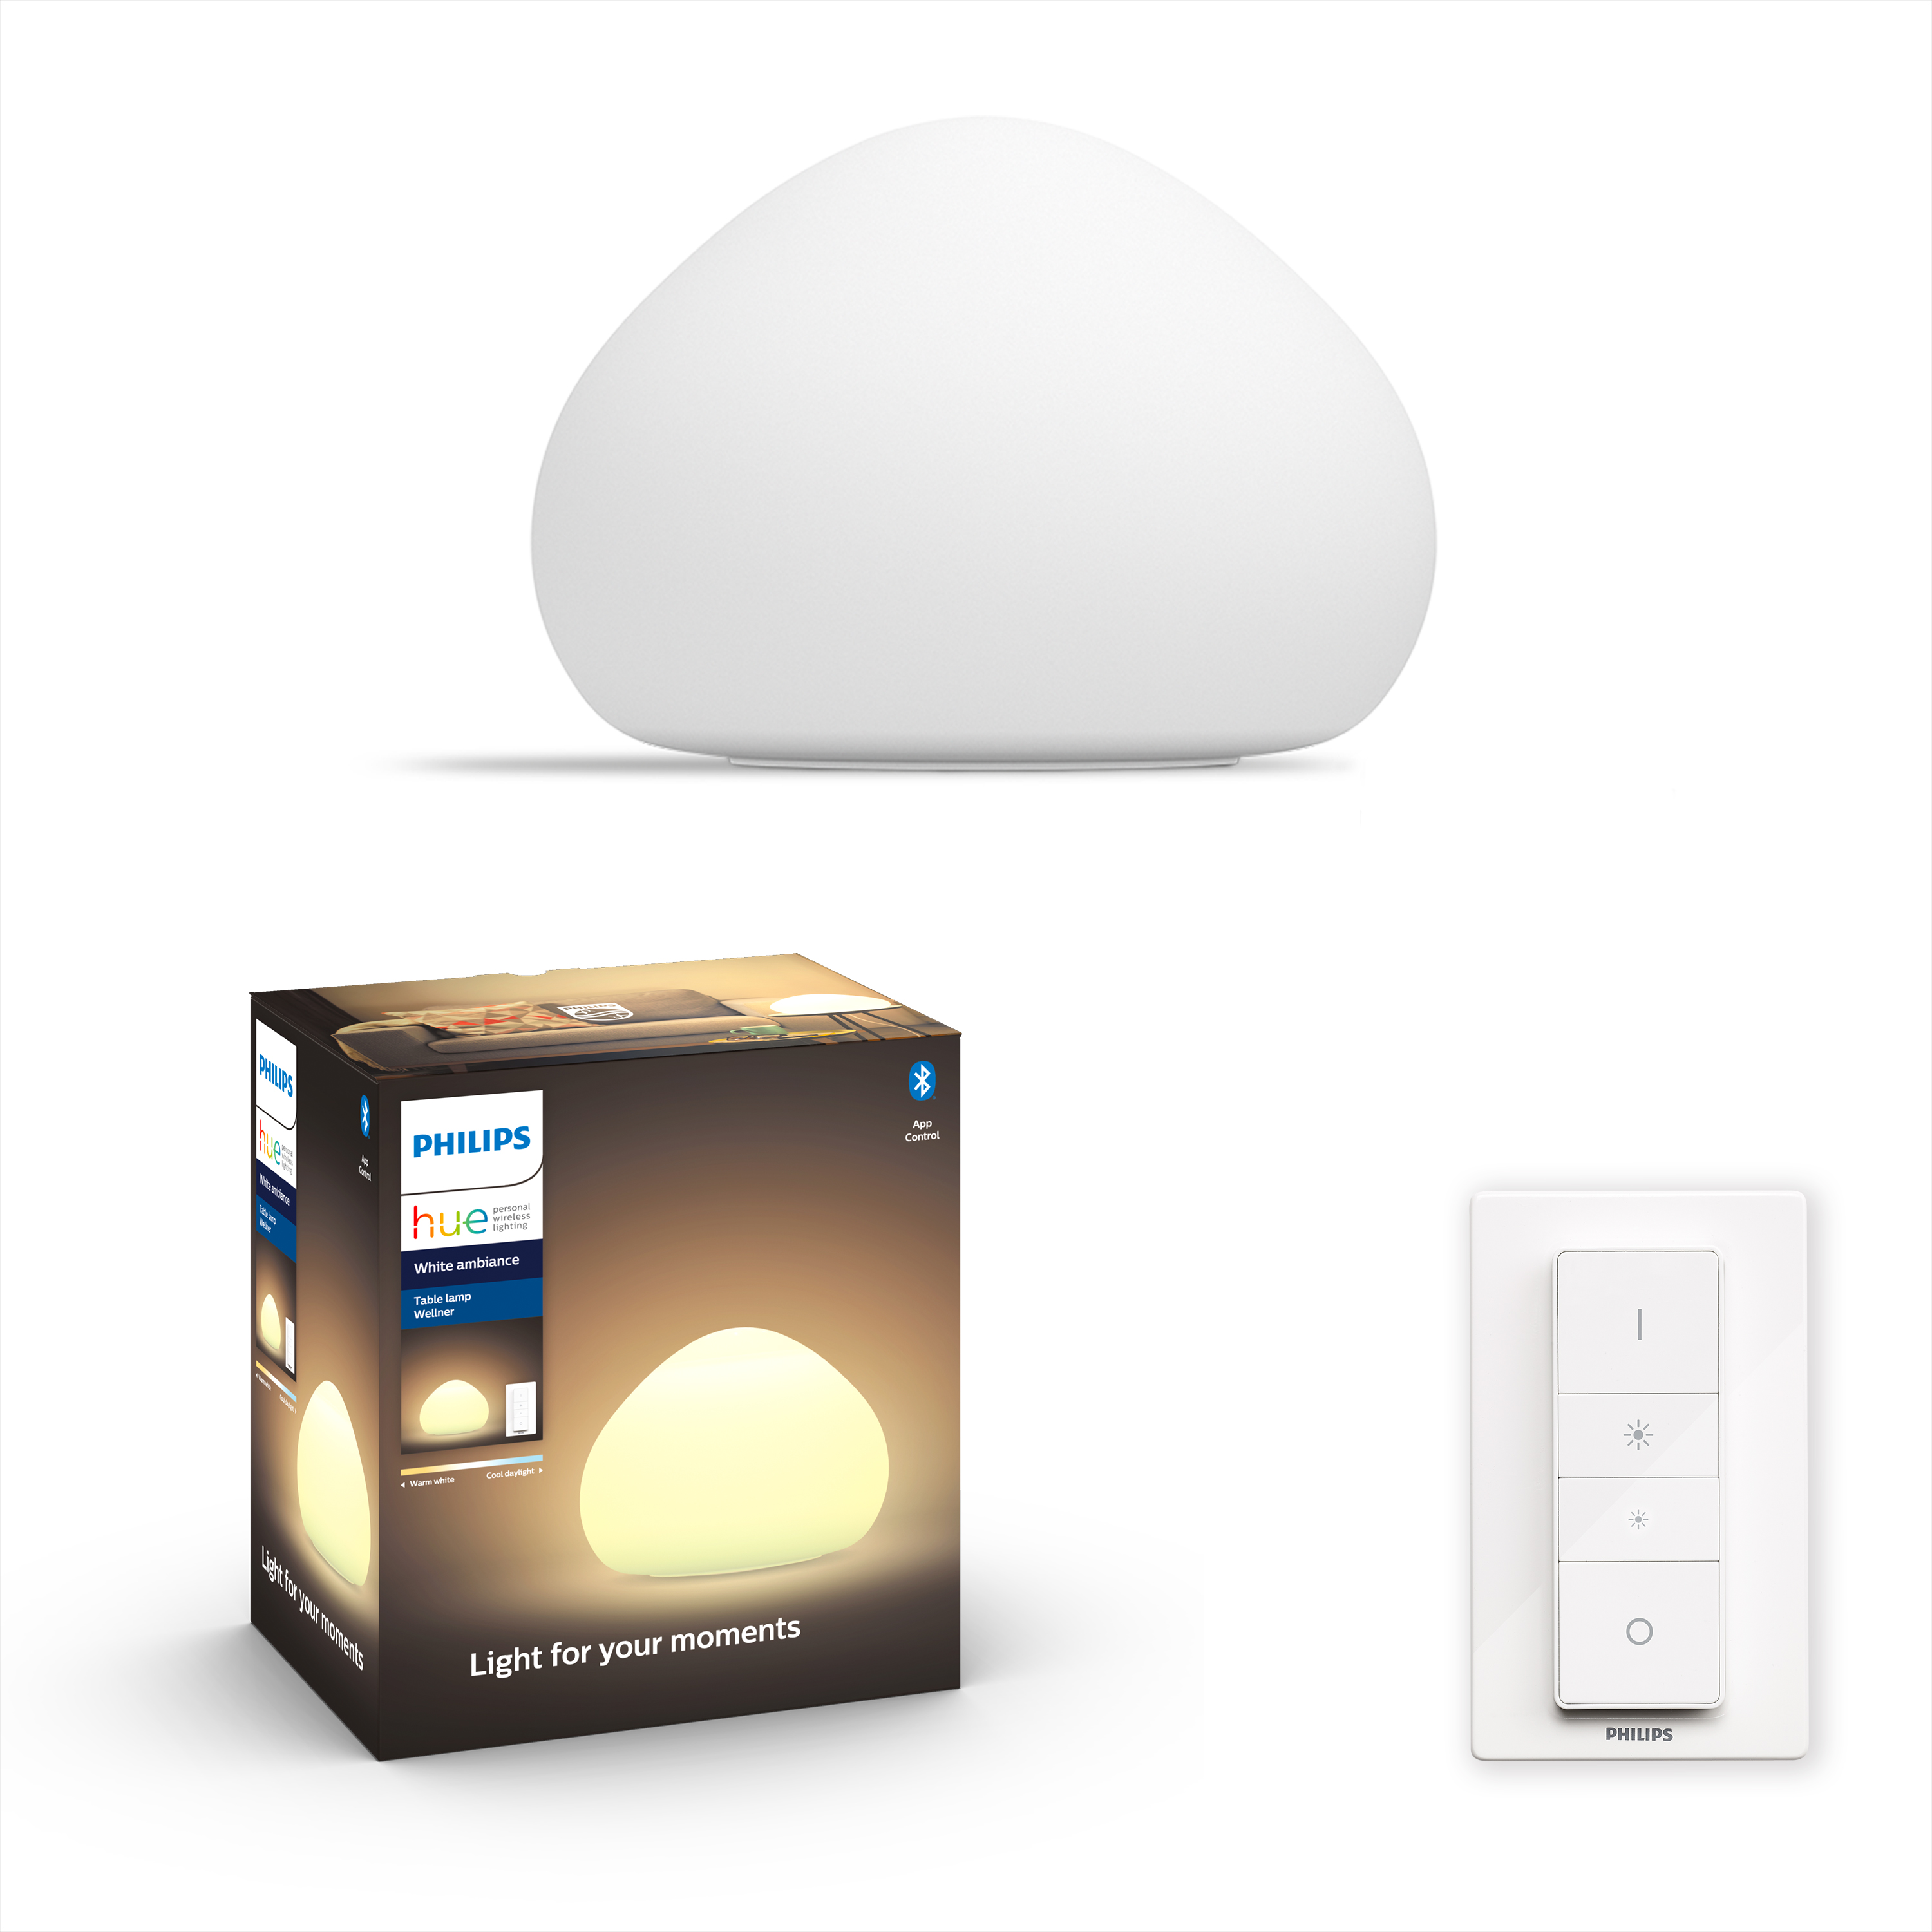 Philips Hue - Wellner Table Lamp White - White Ambiance - Bluetooth